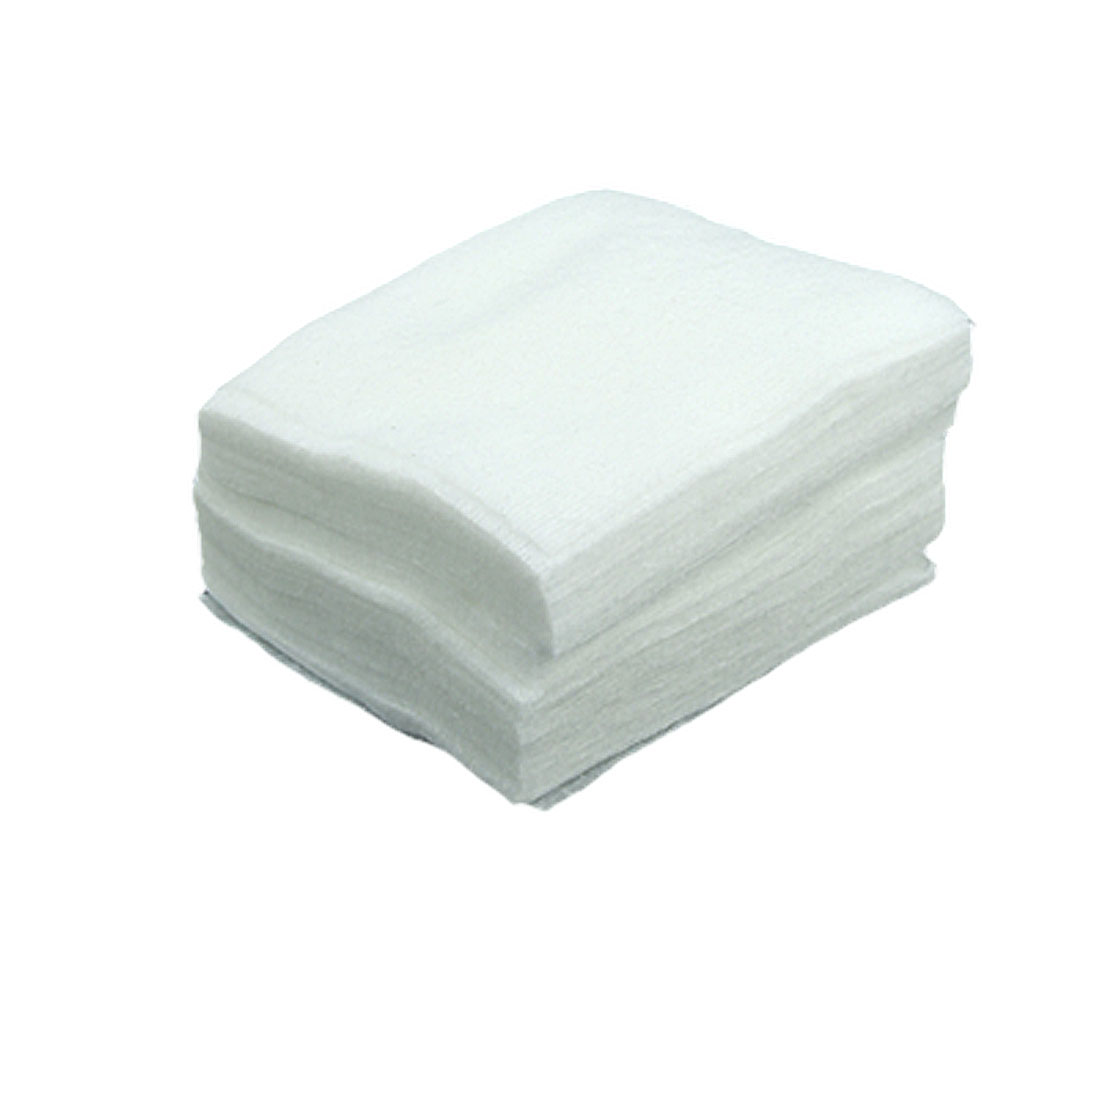 Rectangle Shaped Soft Cosmetic Makeup Cotton Pads